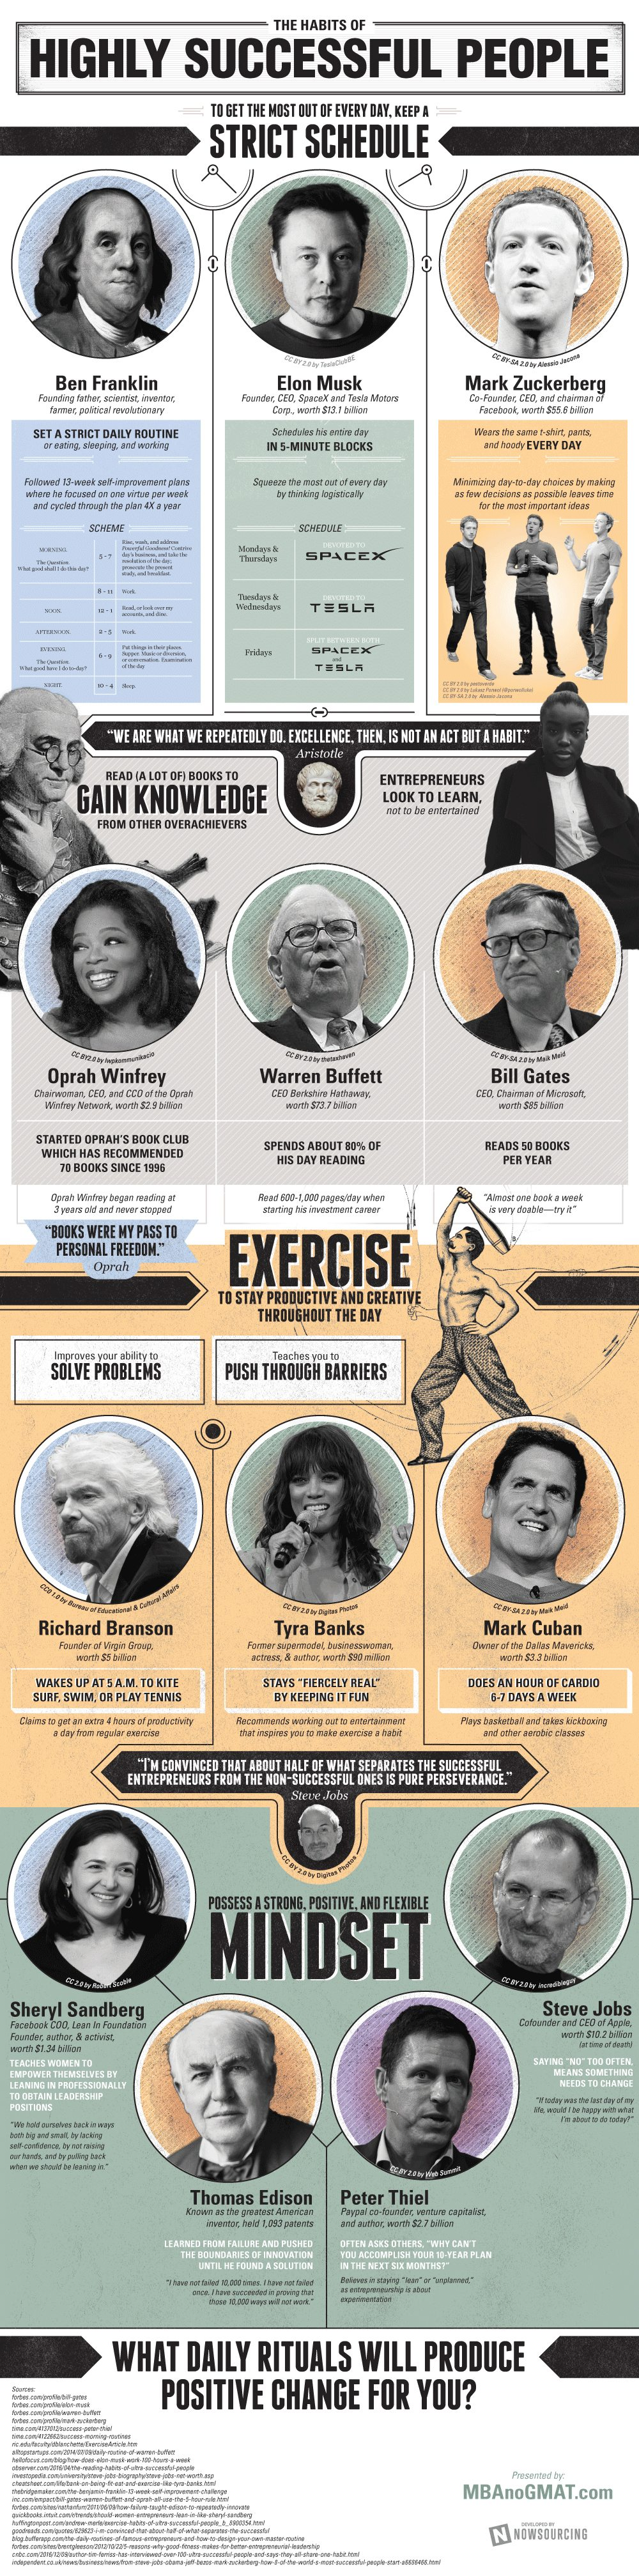 The best tips ever to learn from highly successful entrepreneurs!